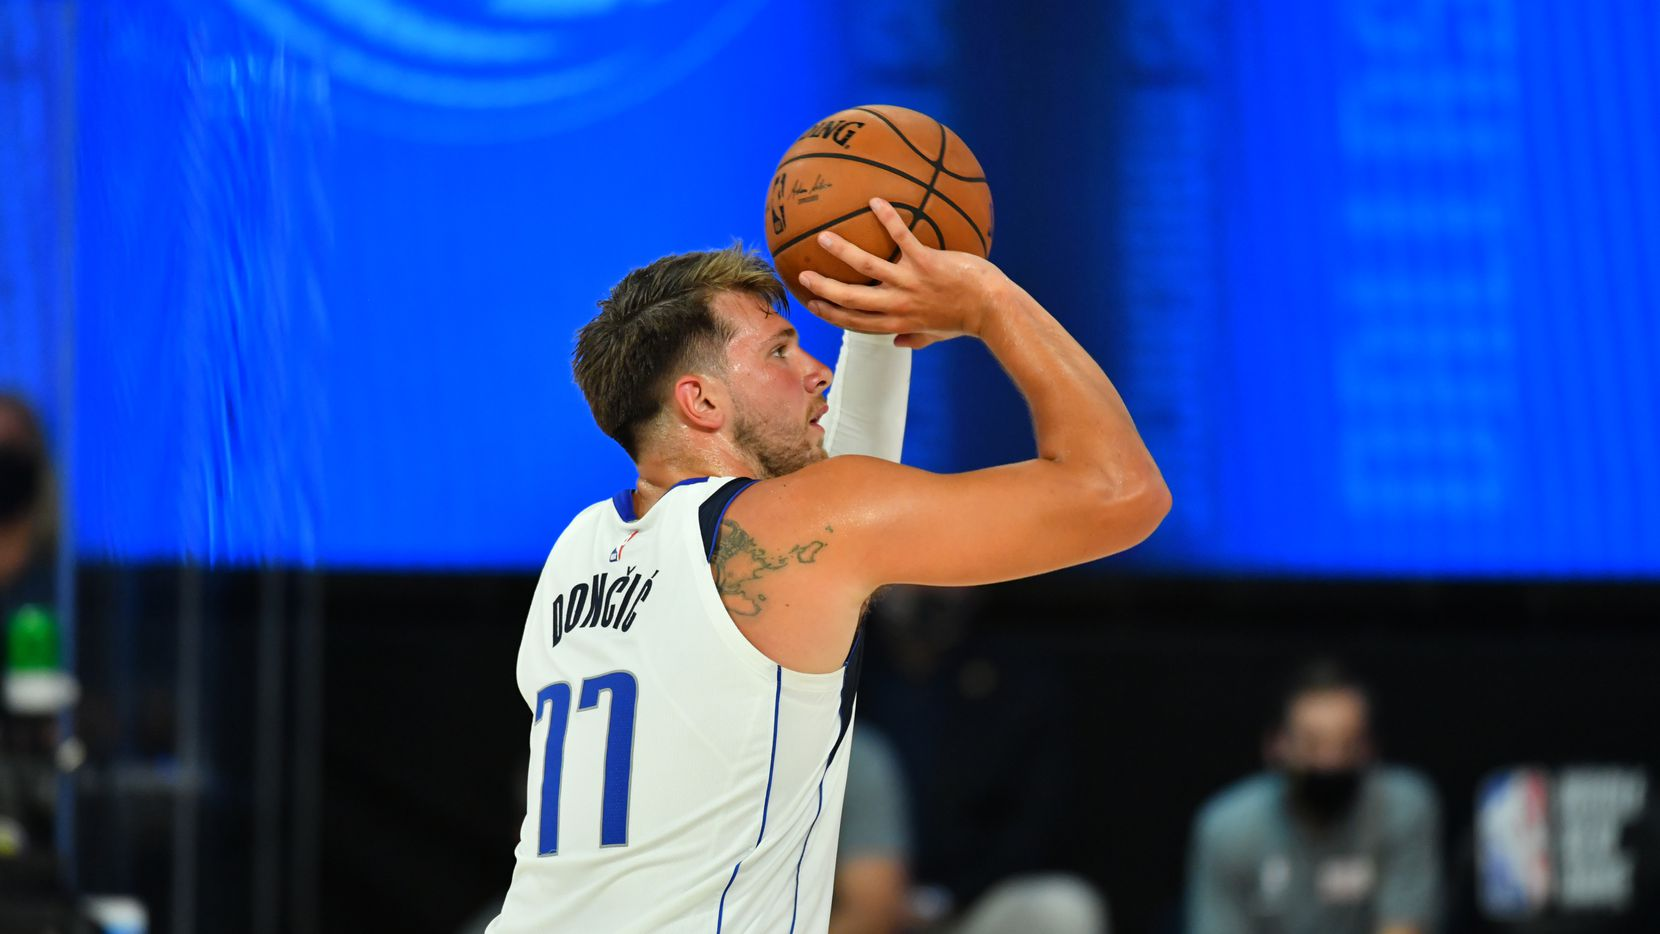 Orlando, FL - JULY 26: Luka Doncic #77 of the Dallas Mavericks shoots a free-throw during a scrimmage against the Indiana Pacers on July 26, 2020 at HP Field House at ESPN Wide World of Sports in Orlando, Florida.